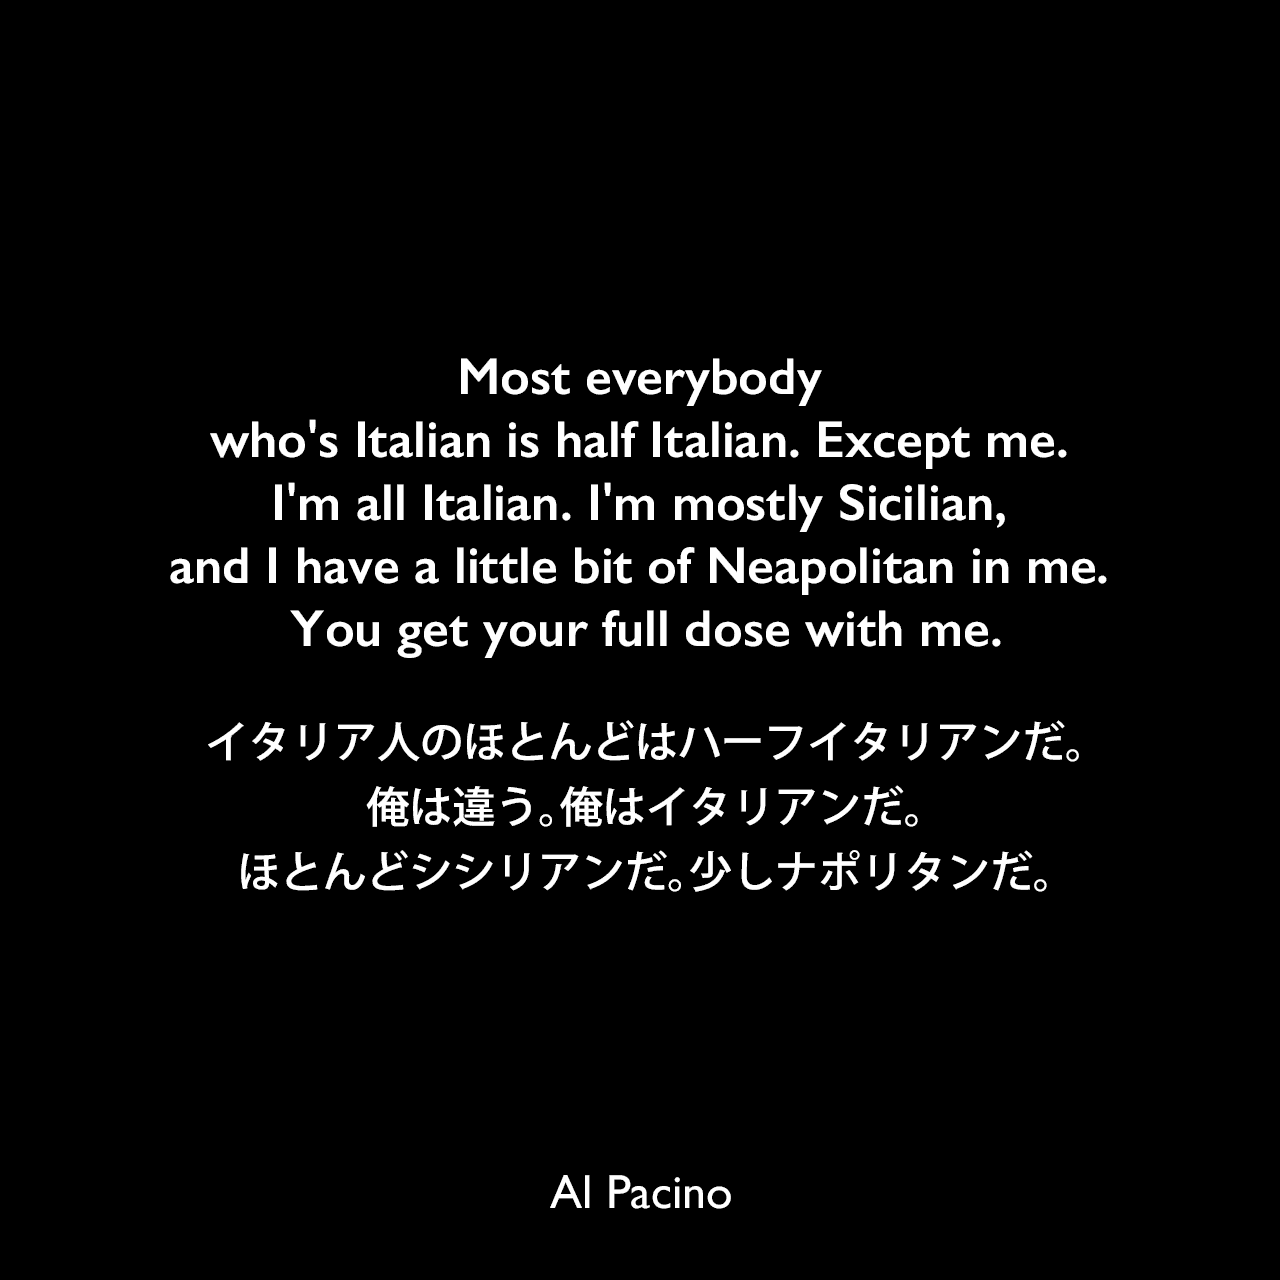 Most everybody who's Italian is half Italian. Except me. I'm all Italian. I'm mostly Sicilian, and I have a little bit of Neapolitan in me. You get your full dose with me.イタリア人のほとんどはハーフイタリアンだ。俺は違う。俺はイタリアンだ。ほとんどシシリアンだ。少しナポリタンだ。Al Pacino